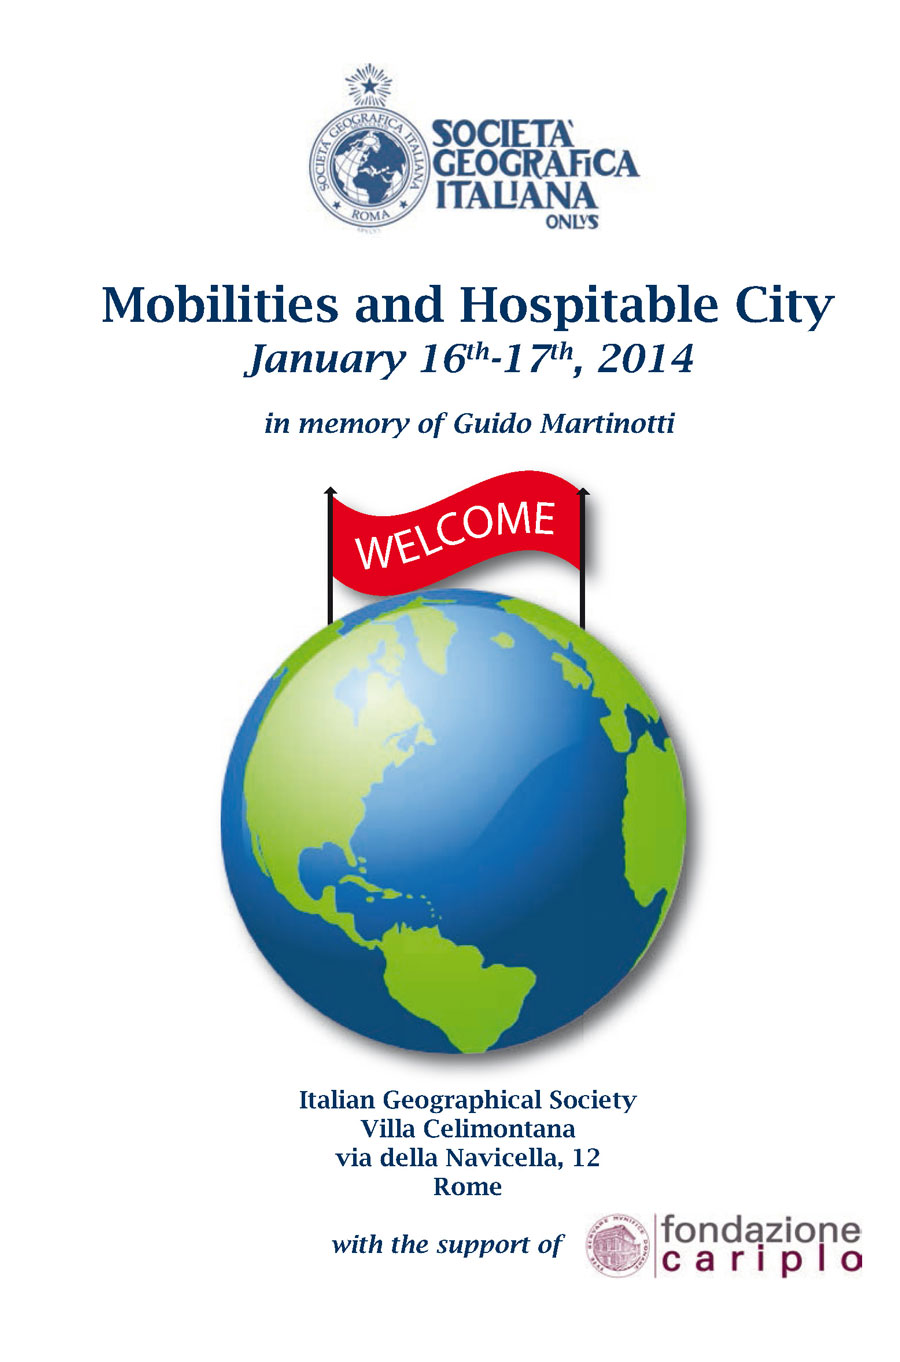 Convegno - Mobilities and Hospitable City